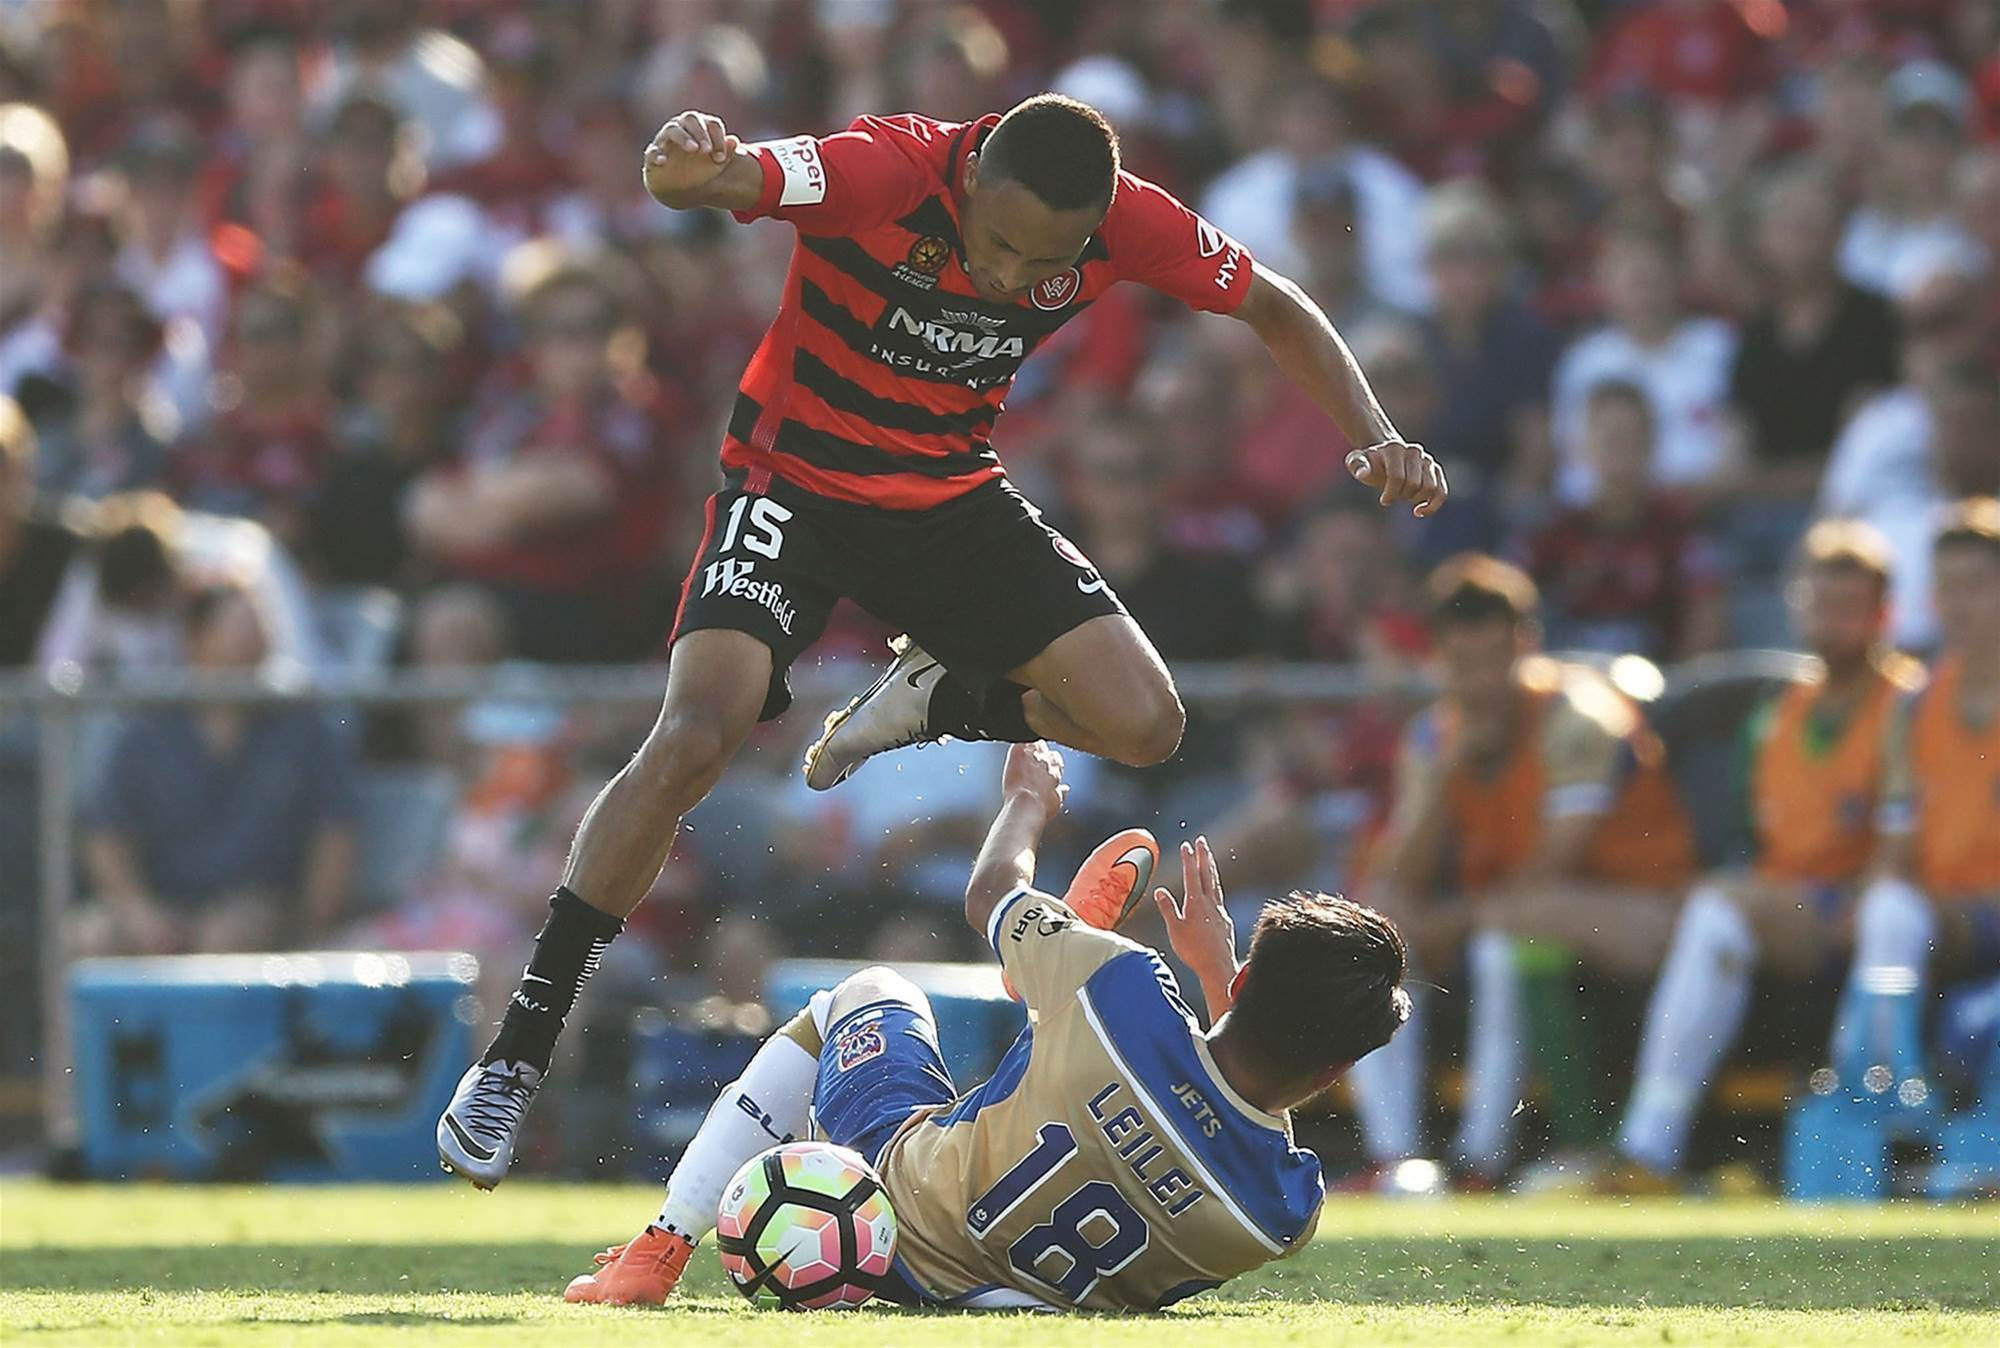 Wanderers v Jets pic special